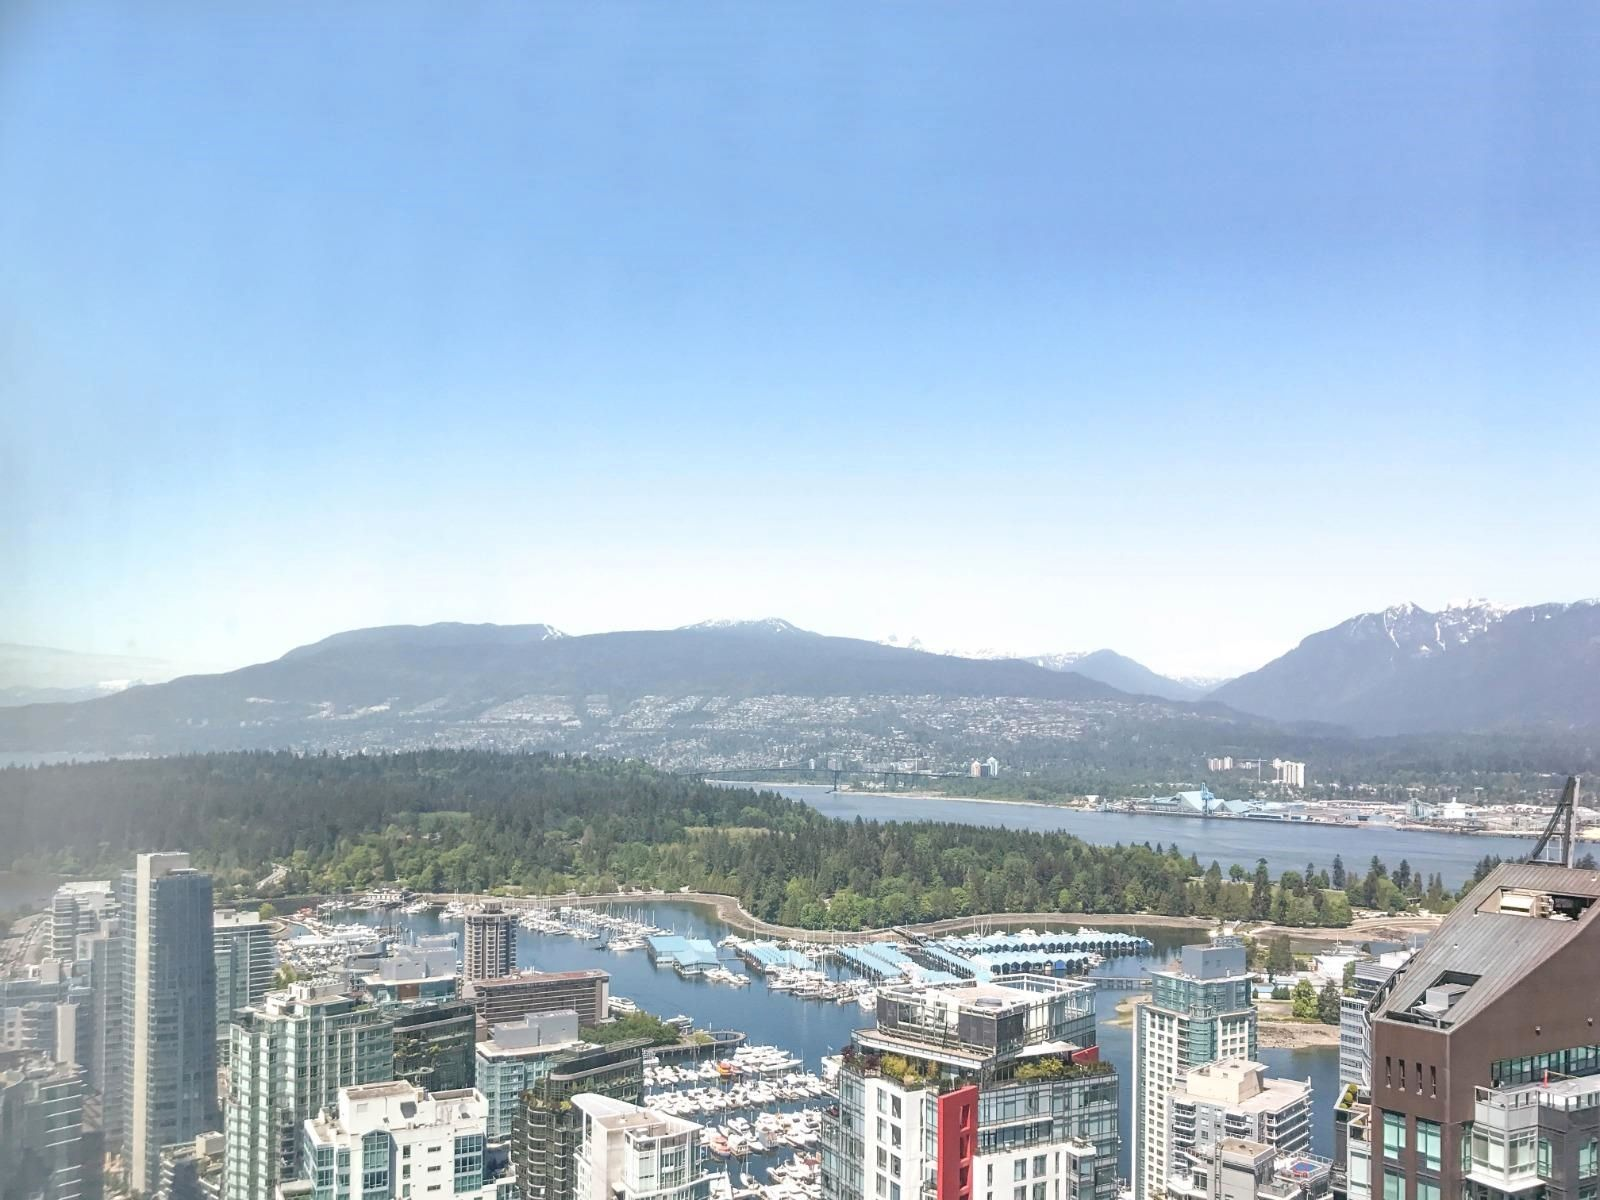 """Main Photo: 5506 1151 W GEORGIA Street in Vancouver: Coal Harbour Condo for sale in """"Trump Vancouver Residences"""" (Vancouver West)  : MLS®# R2624885"""